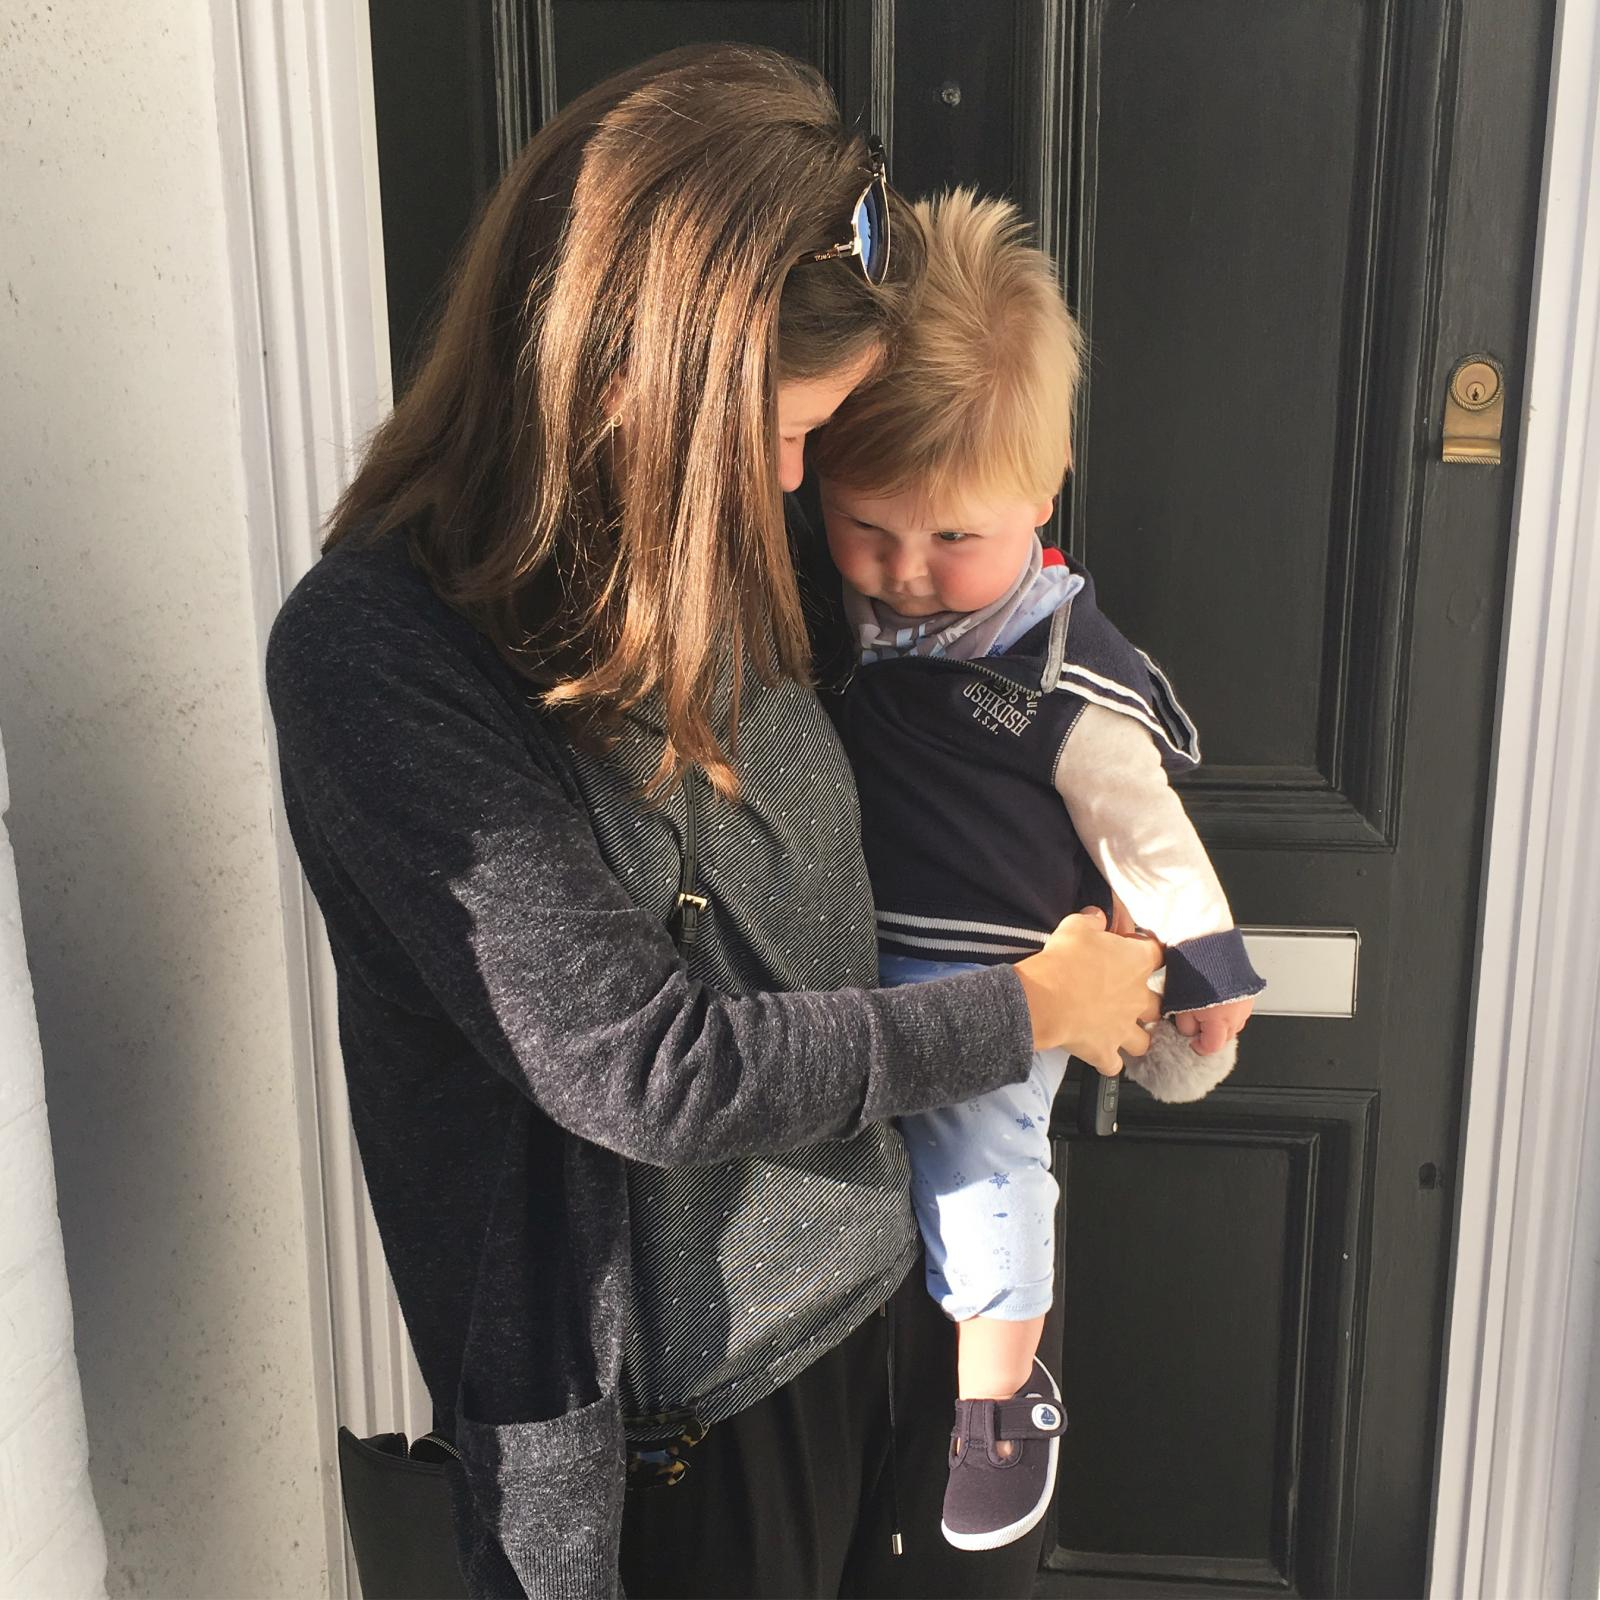 Emotional First Day At Work On First Day Of Co Hosting: The End Of Maternity Leave: A Poem For Mummy On Her First